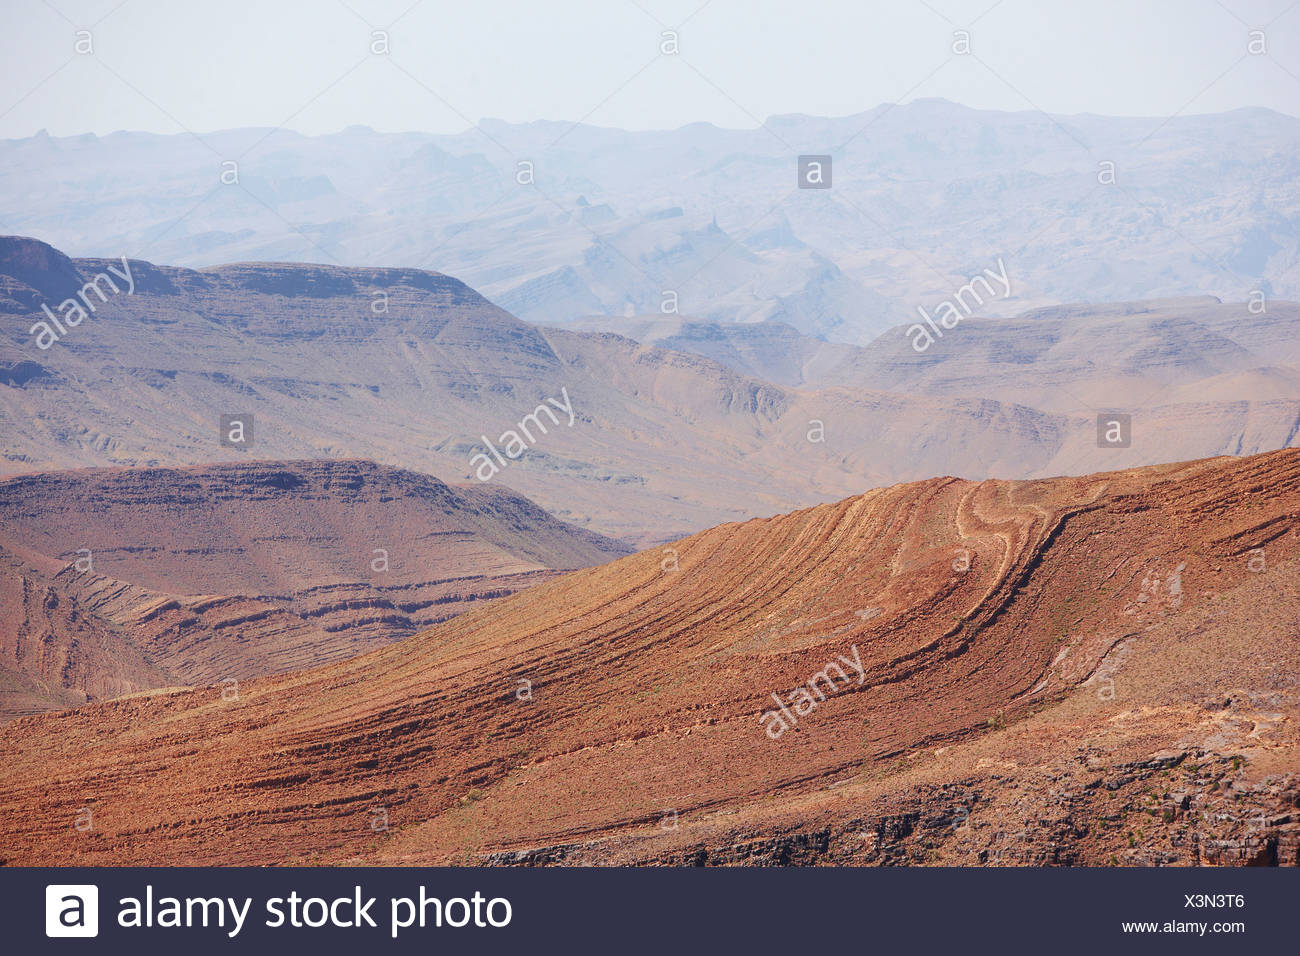 Twisted geologic strata of the Atlas Mountains, Morocco - Stock Image